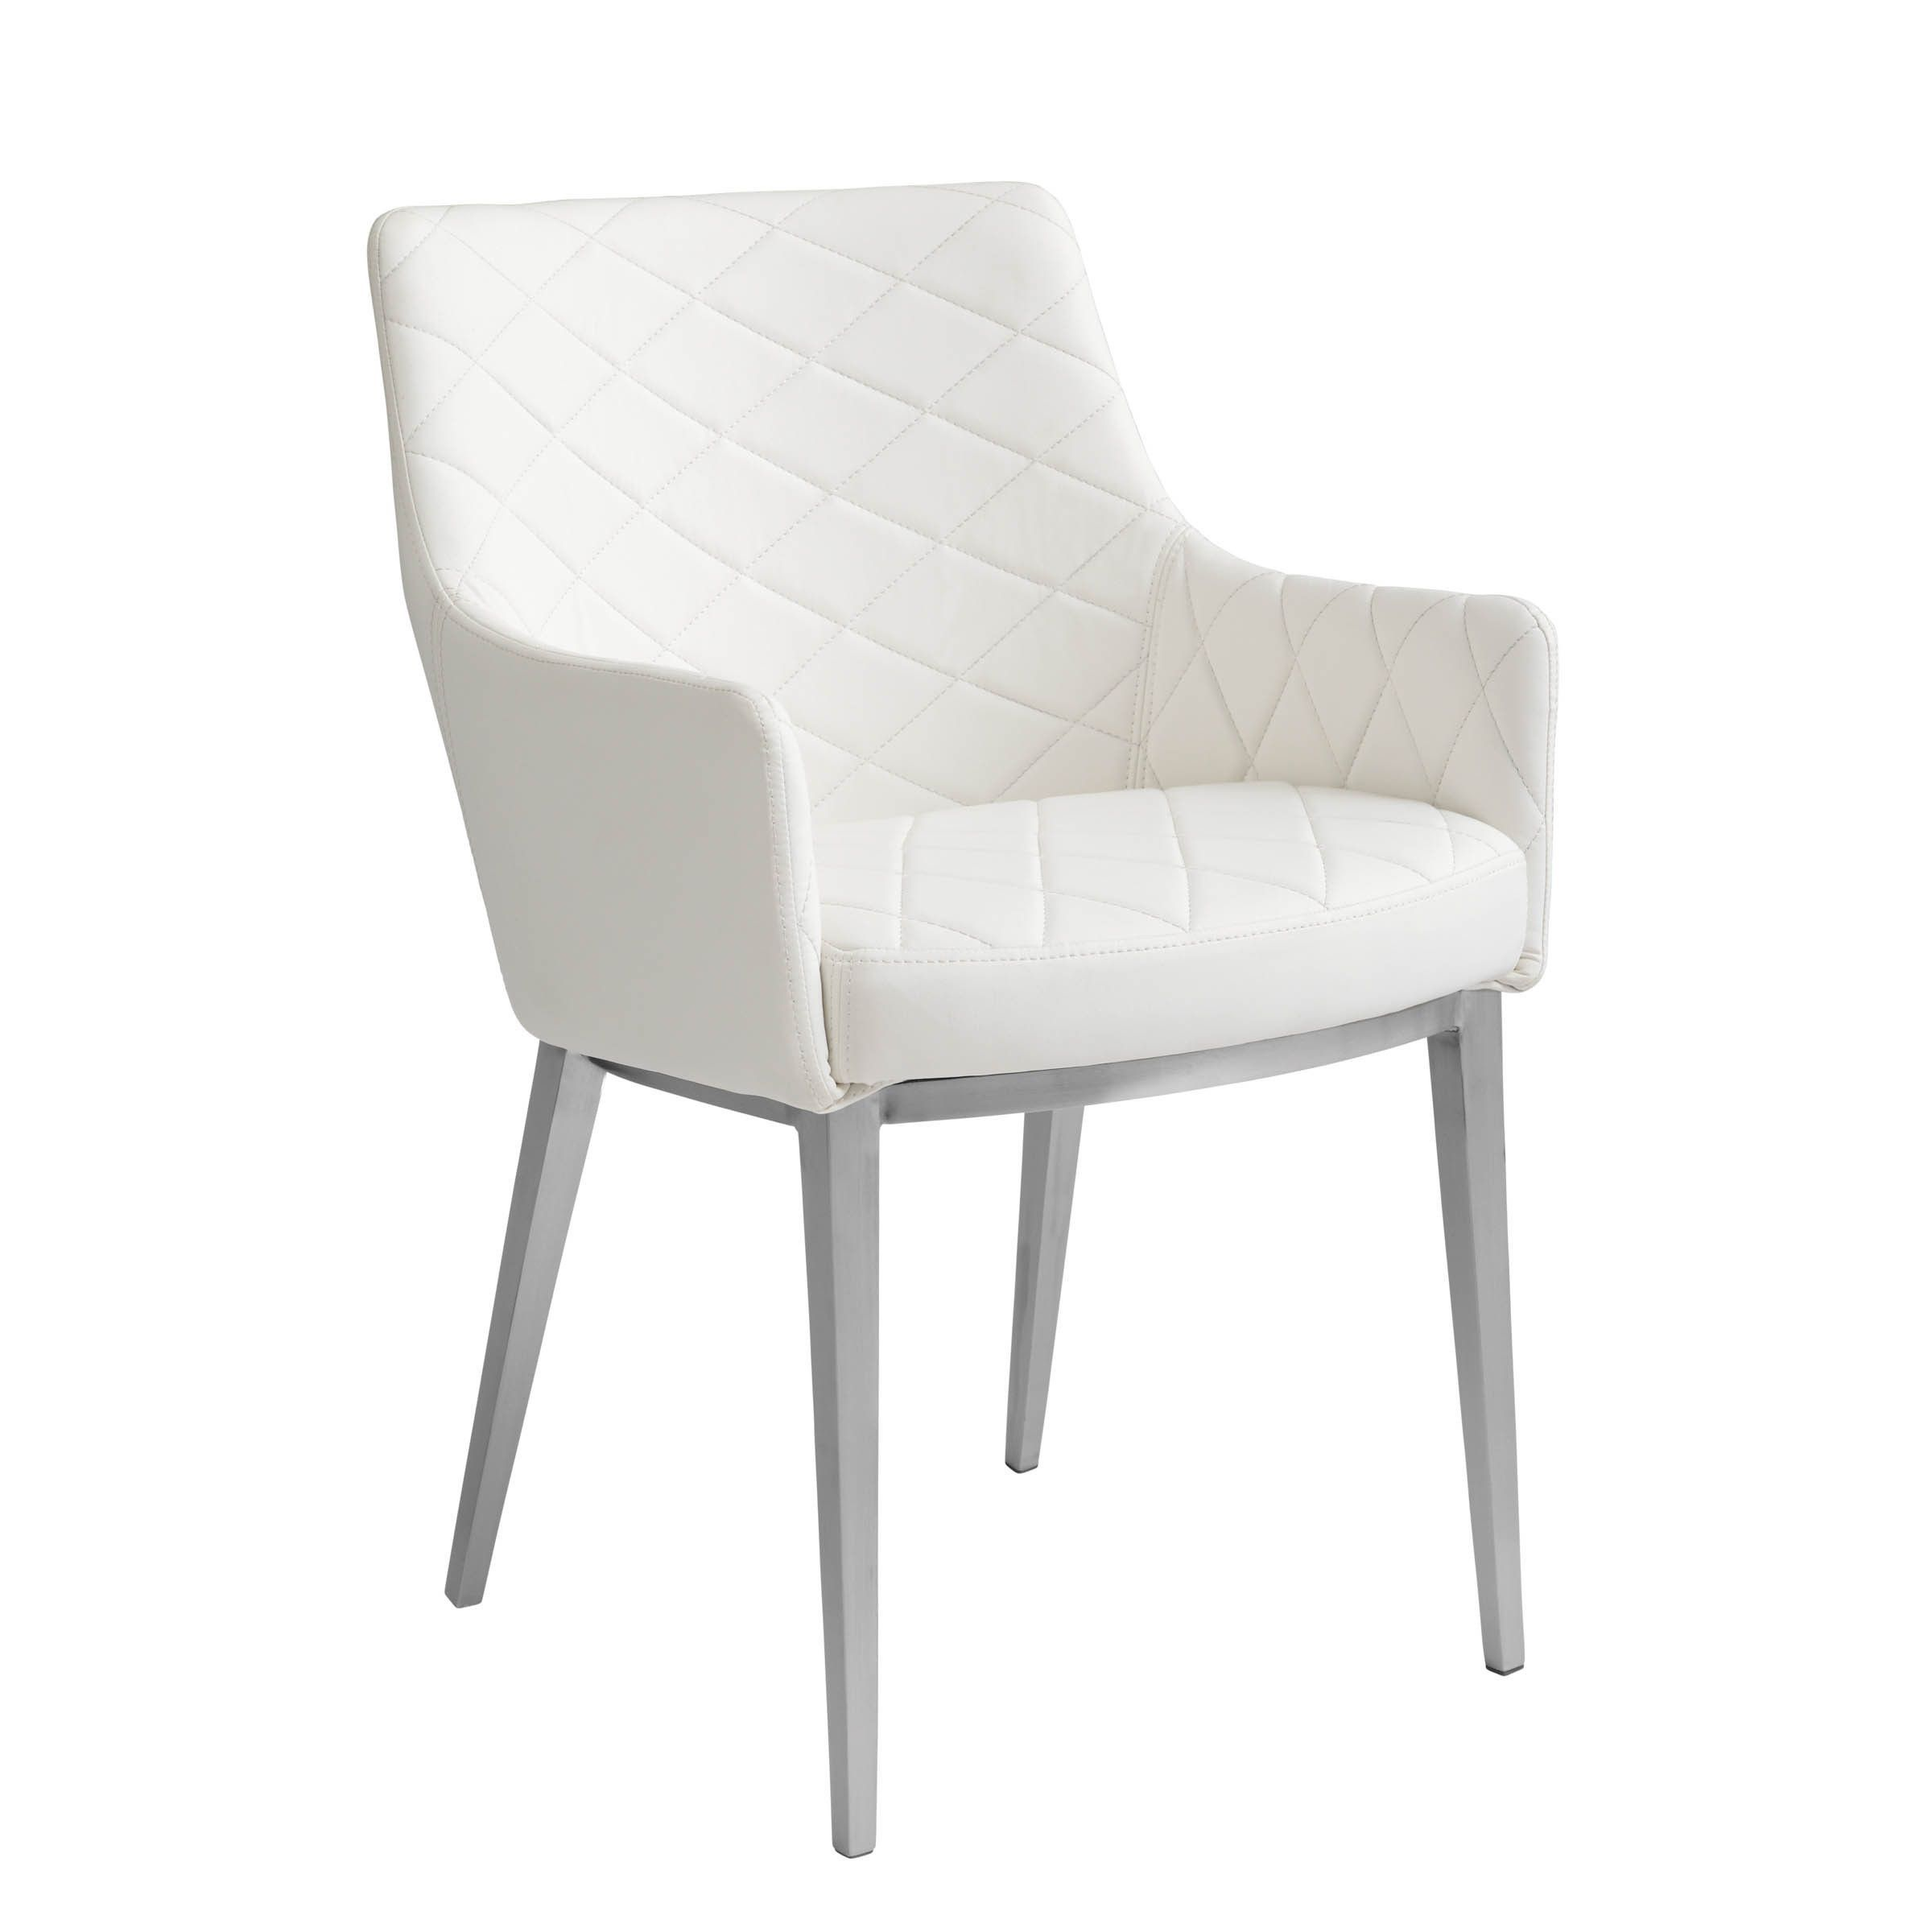 Super Sunpan Ikon Chase Faux Leather Armchair White Chase Faux Pdpeps Interior Chair Design Pdpepsorg